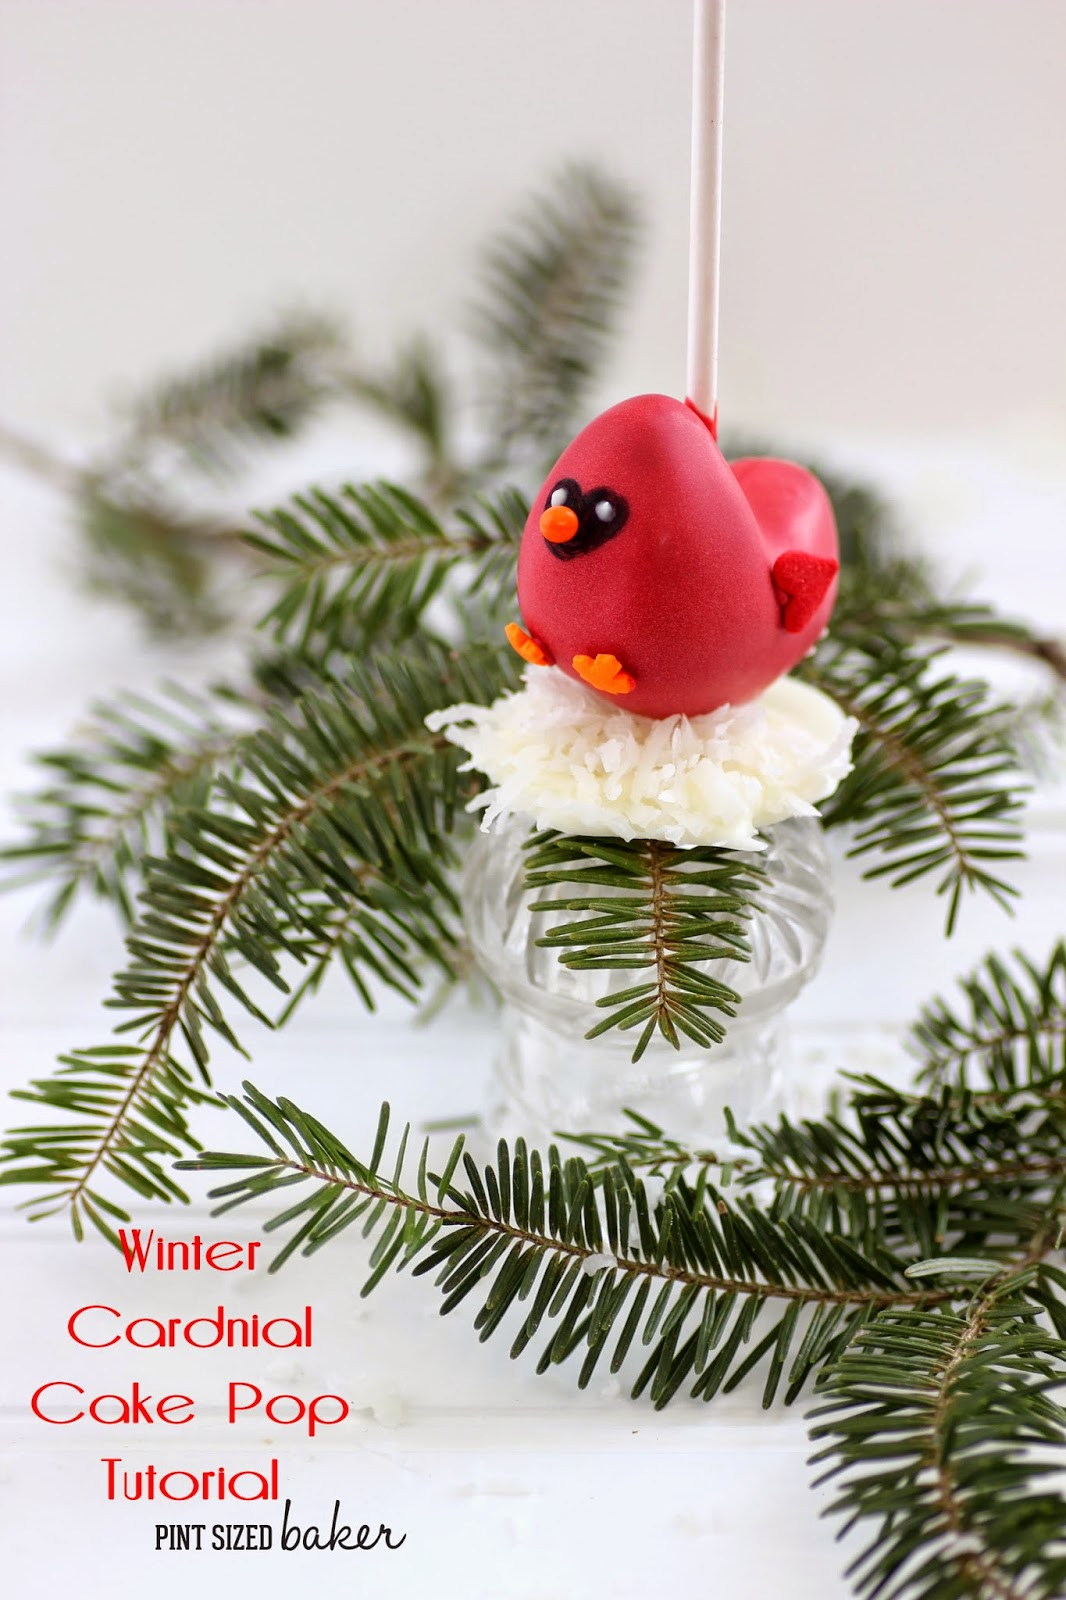 Fat little Winter Cardinal Cake Pops sitting on a bed of snow. Learn how to make them!